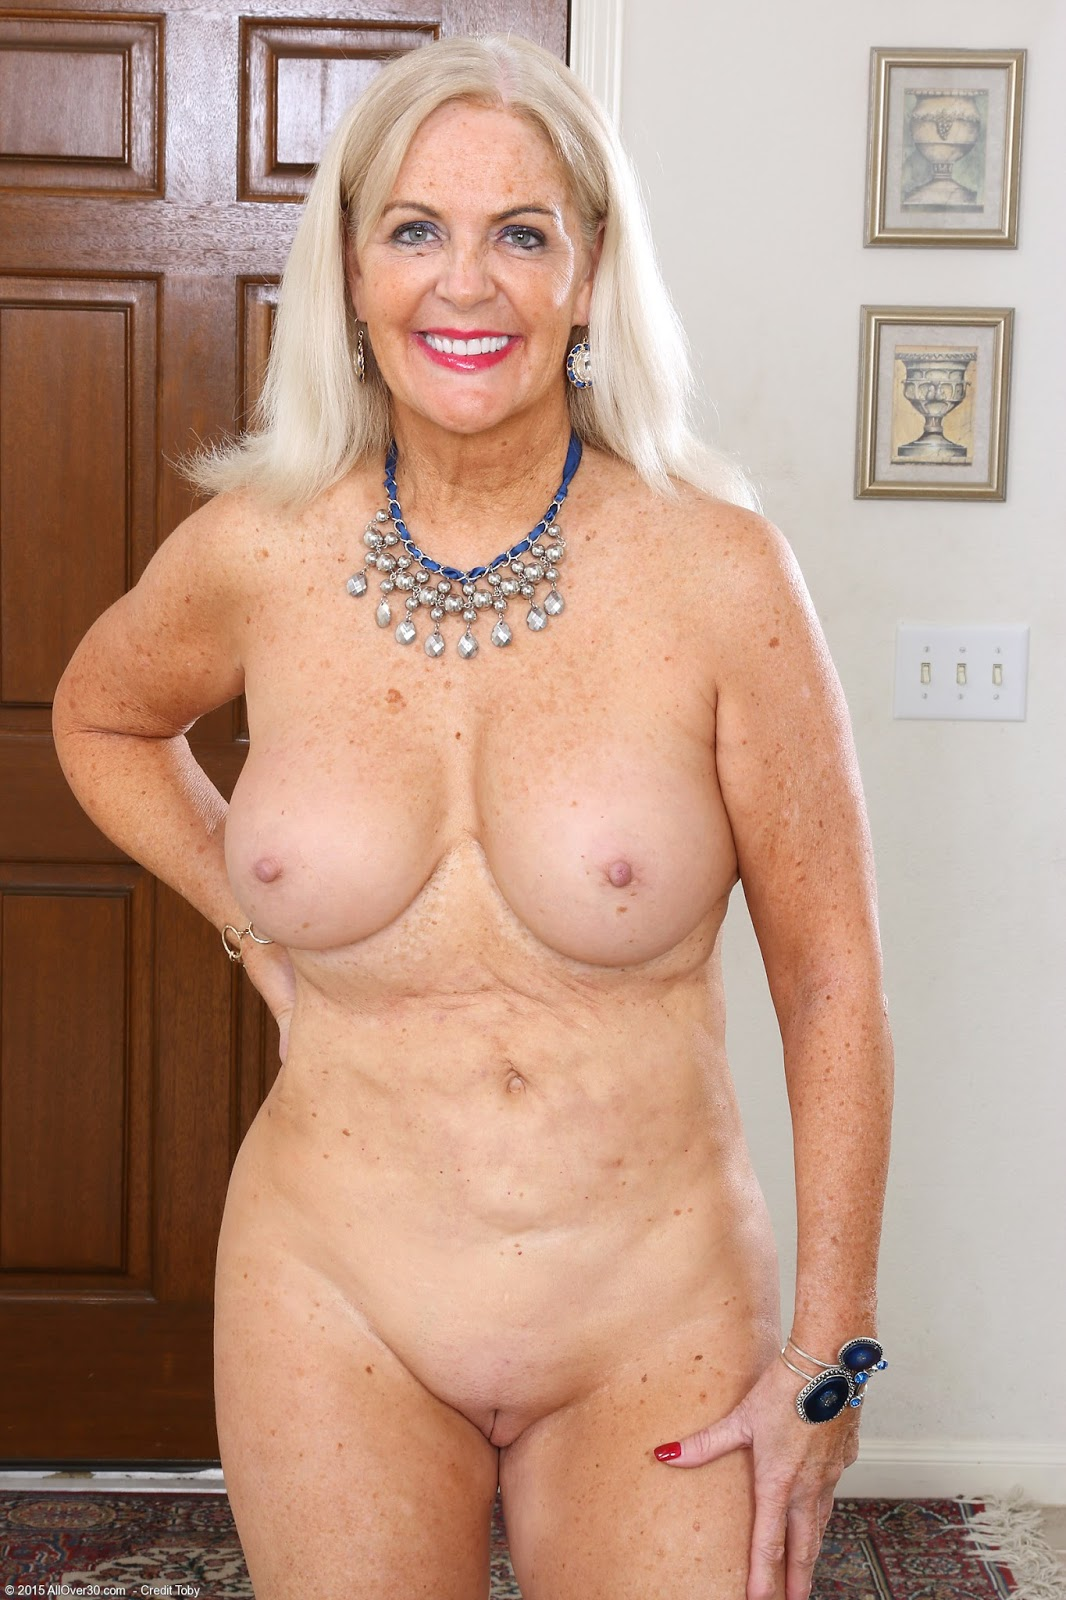 My! granny milf post